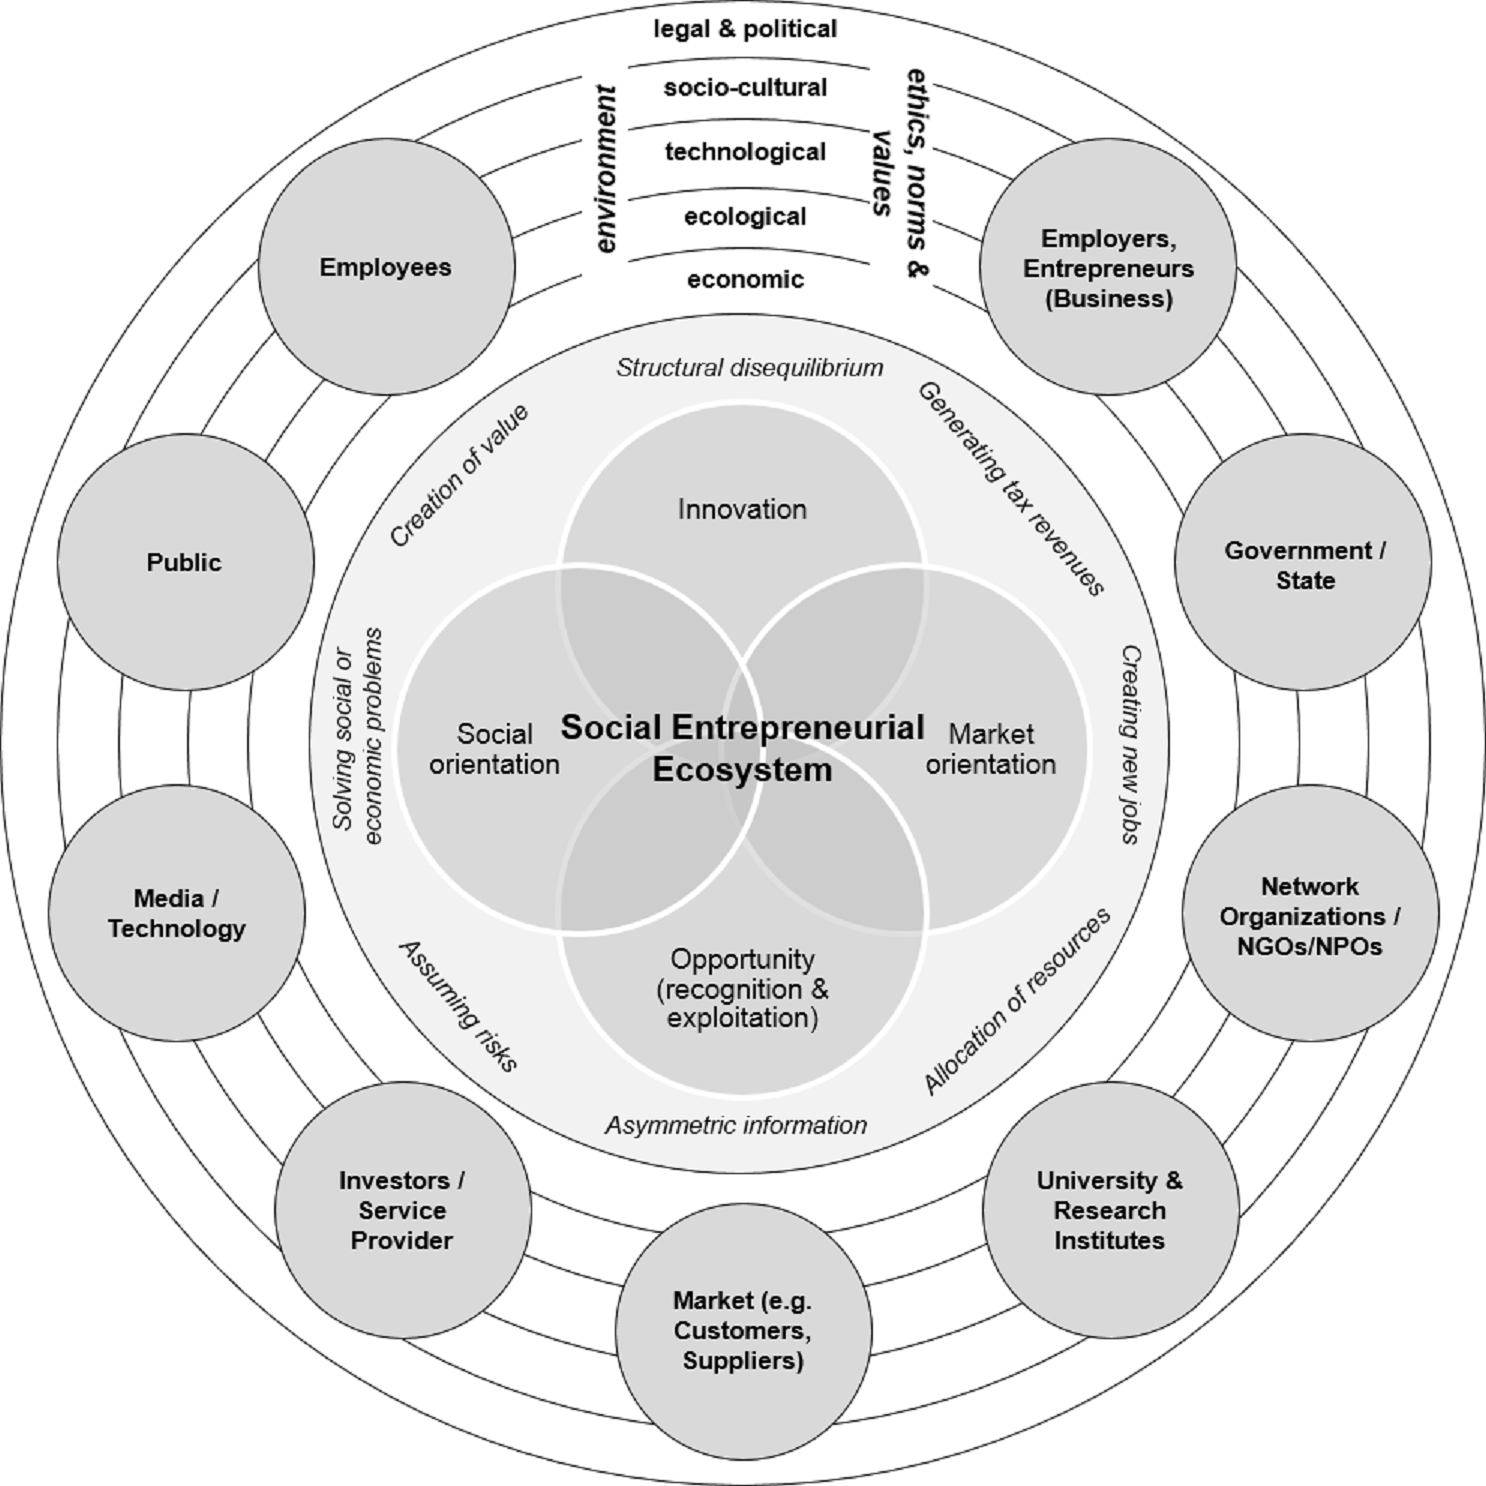 Photo: DIALOGUES OF SUSTAINABLE URBANISATION: SOCIAL SCIENCE RESEARCH AND TRANSITIONS TO URBAN CONTEXTS